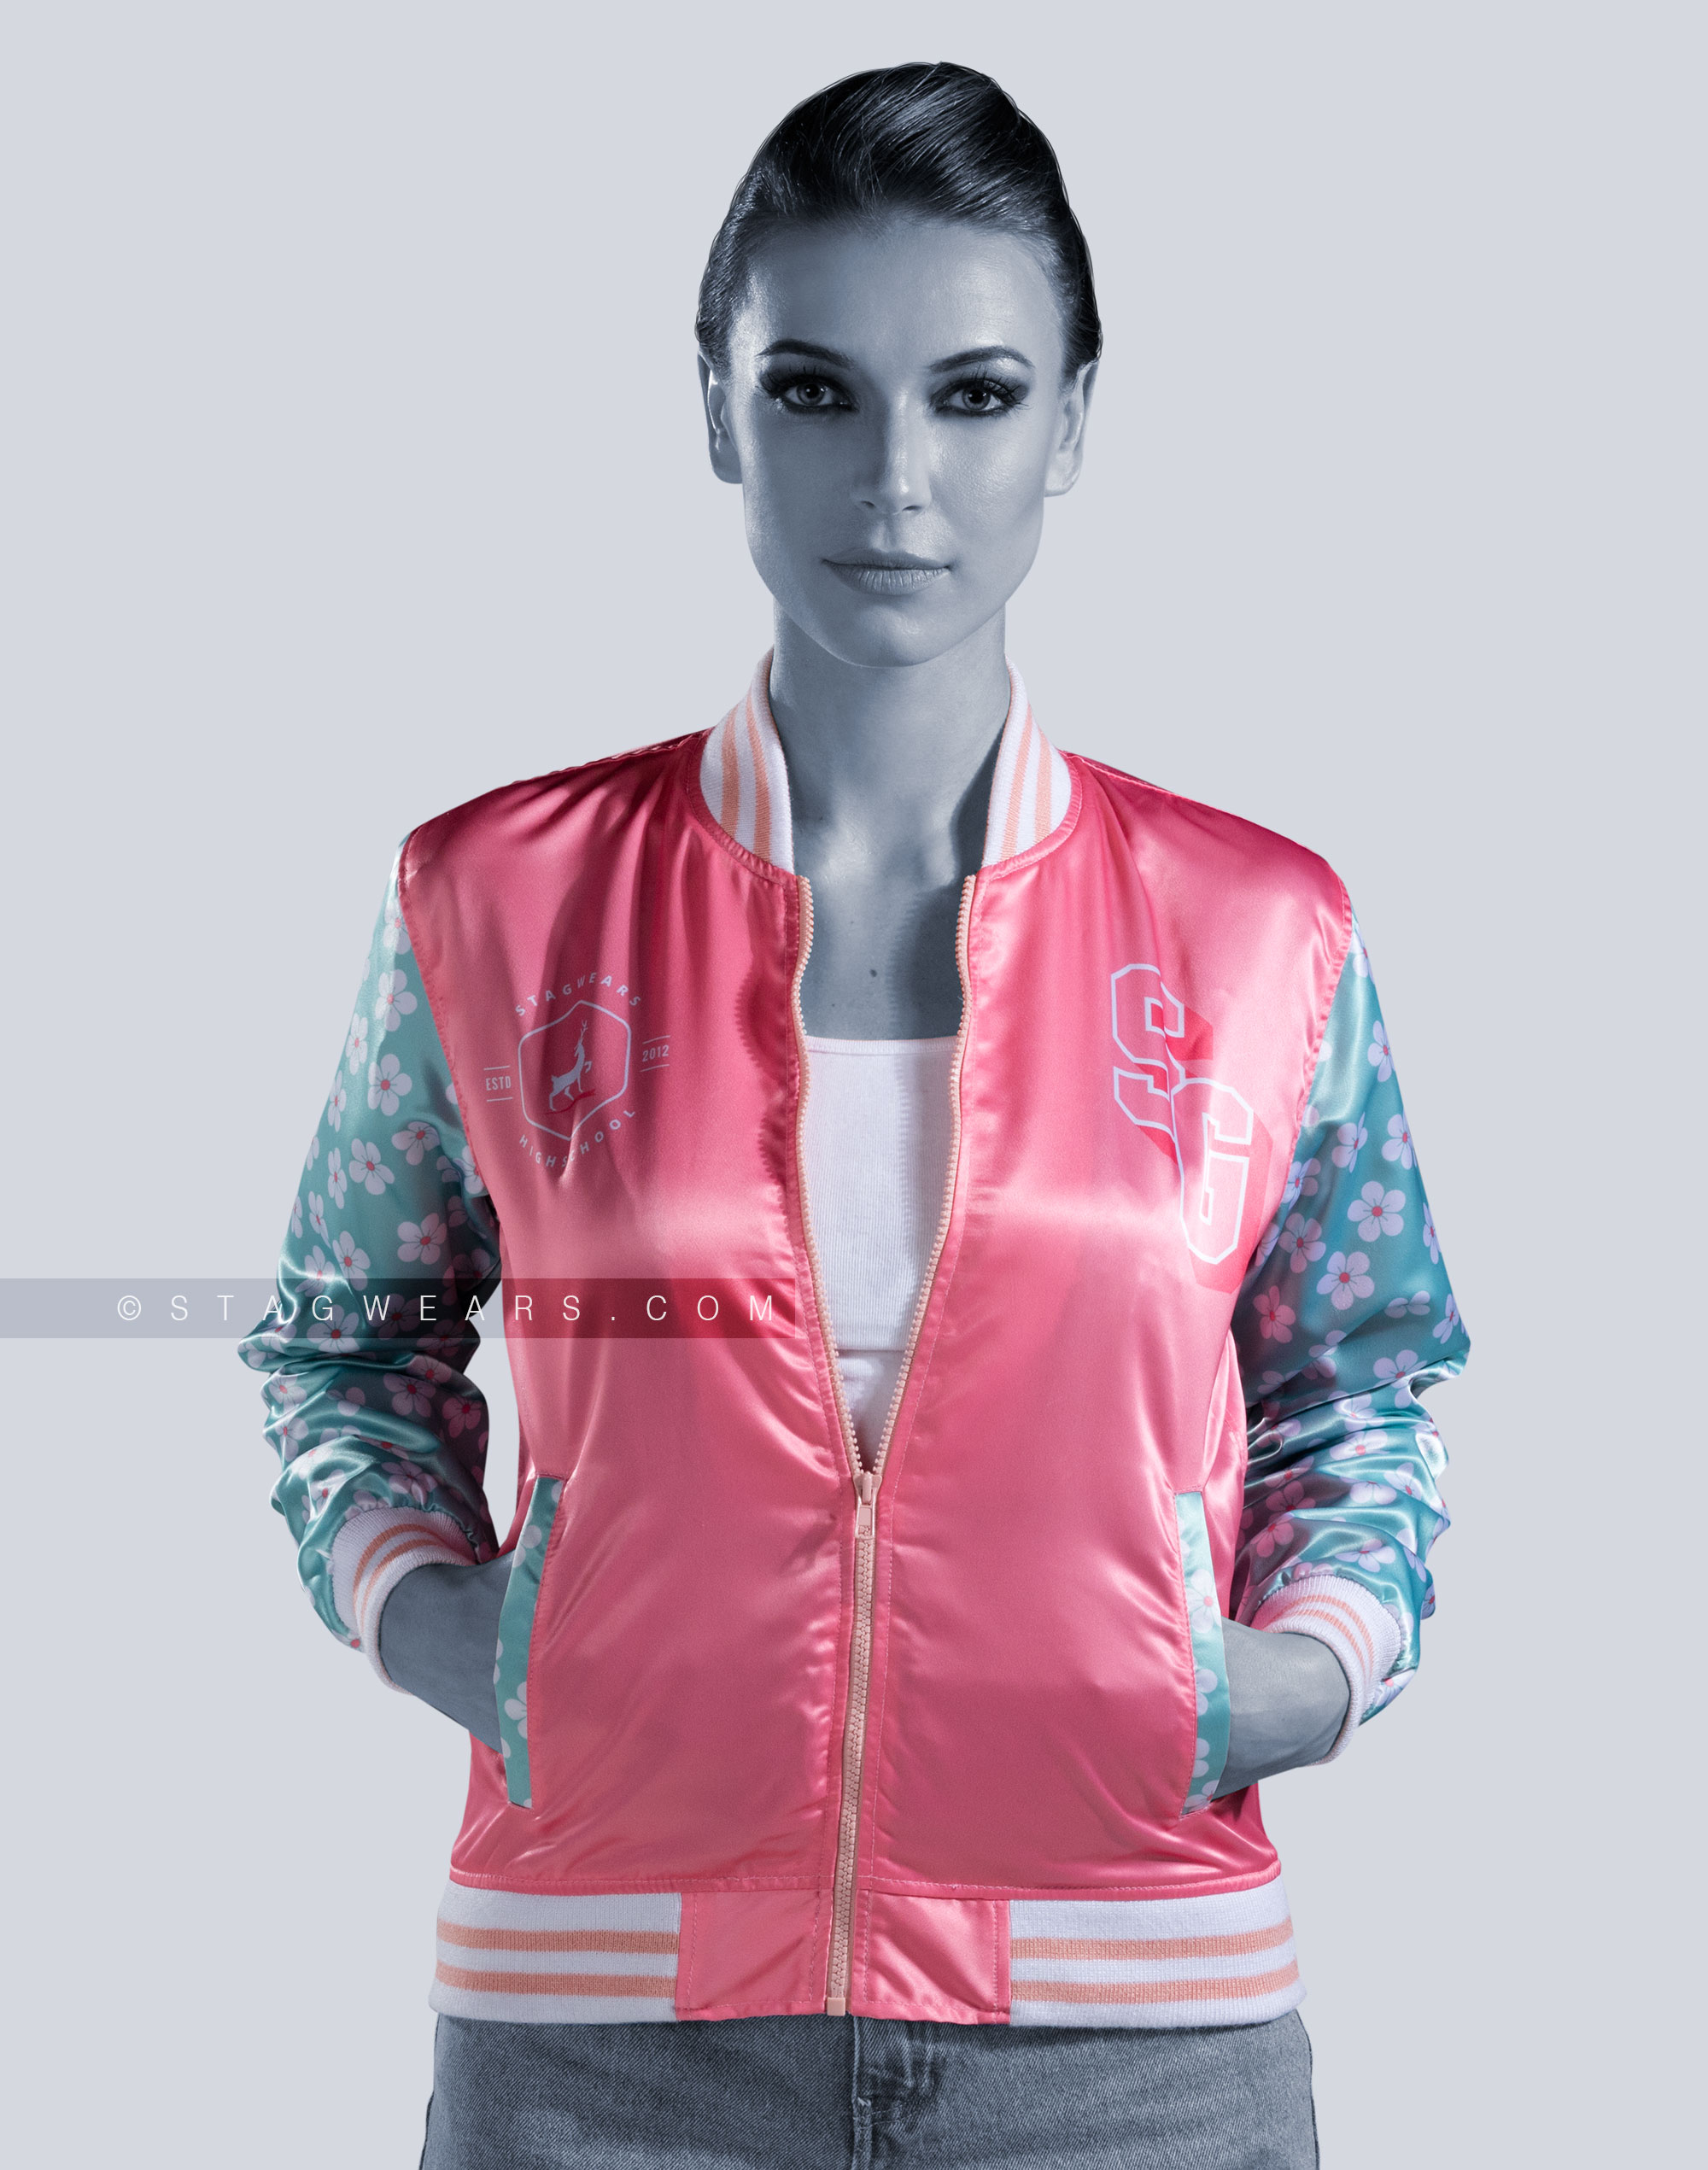 Sublimation Custom Satin Jackets Printed Satin Jackets